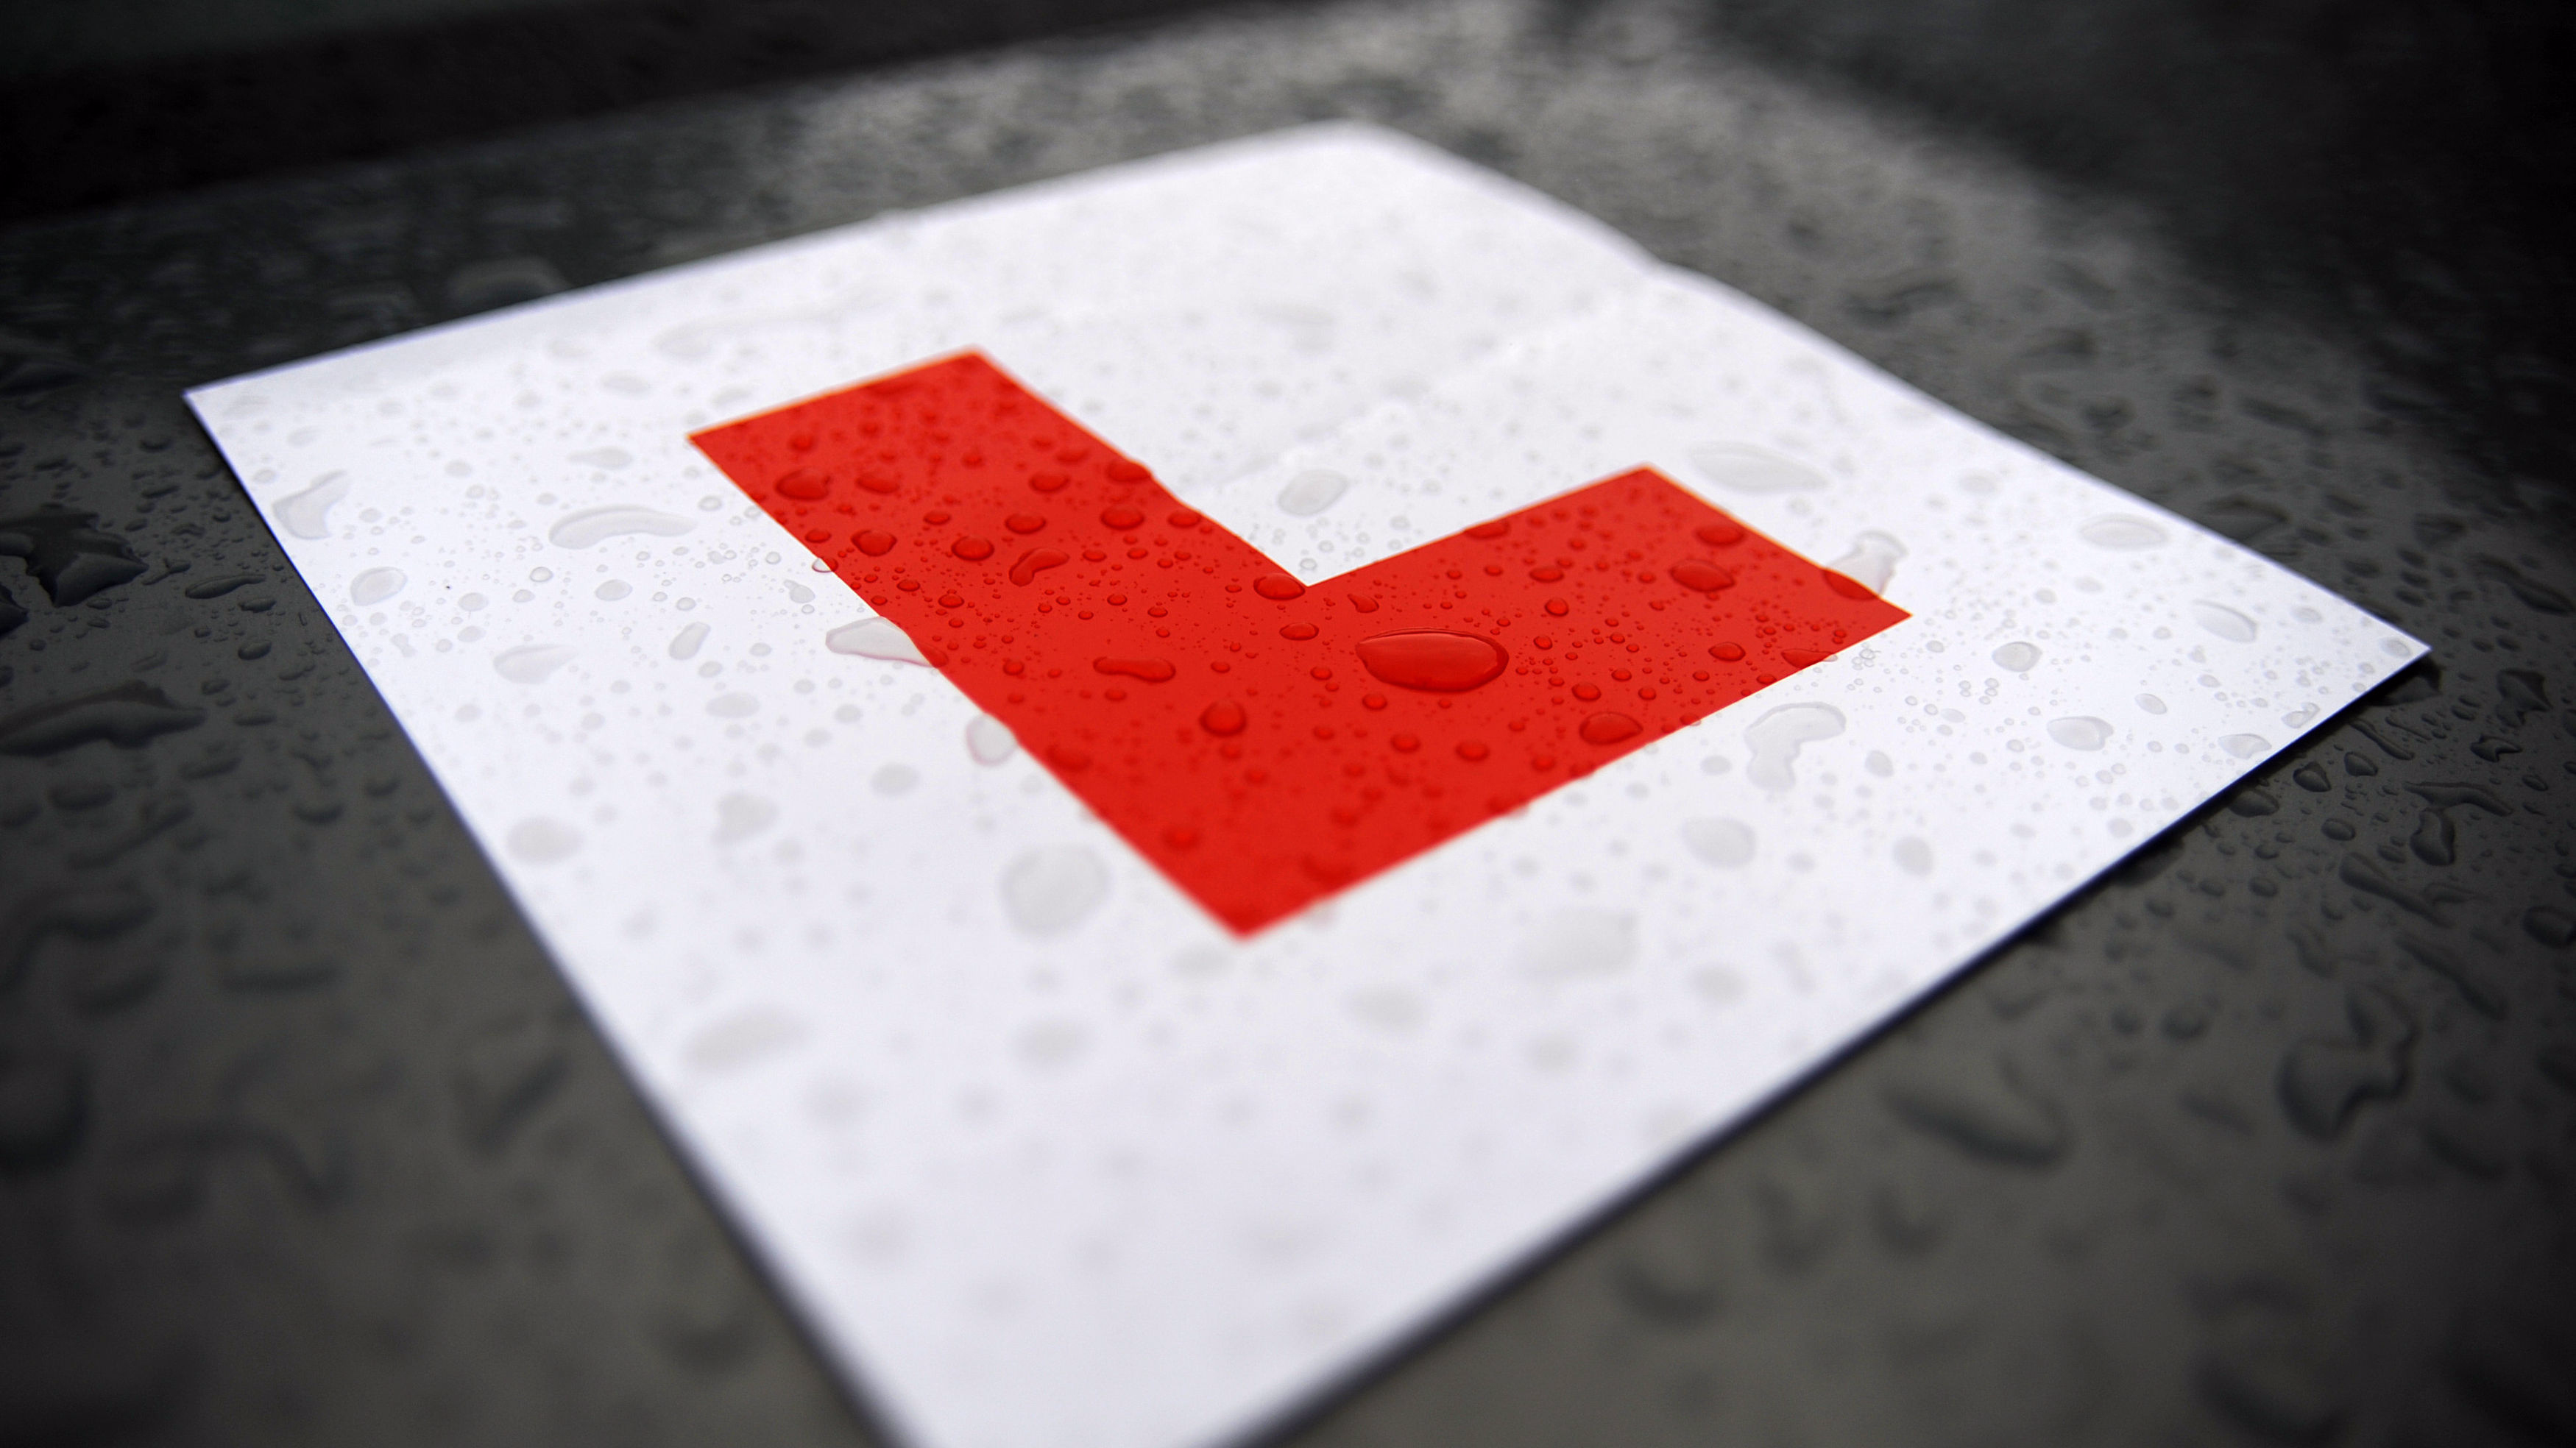 Clever People Require More Attempts To Pass Driving Test, Study Reveals